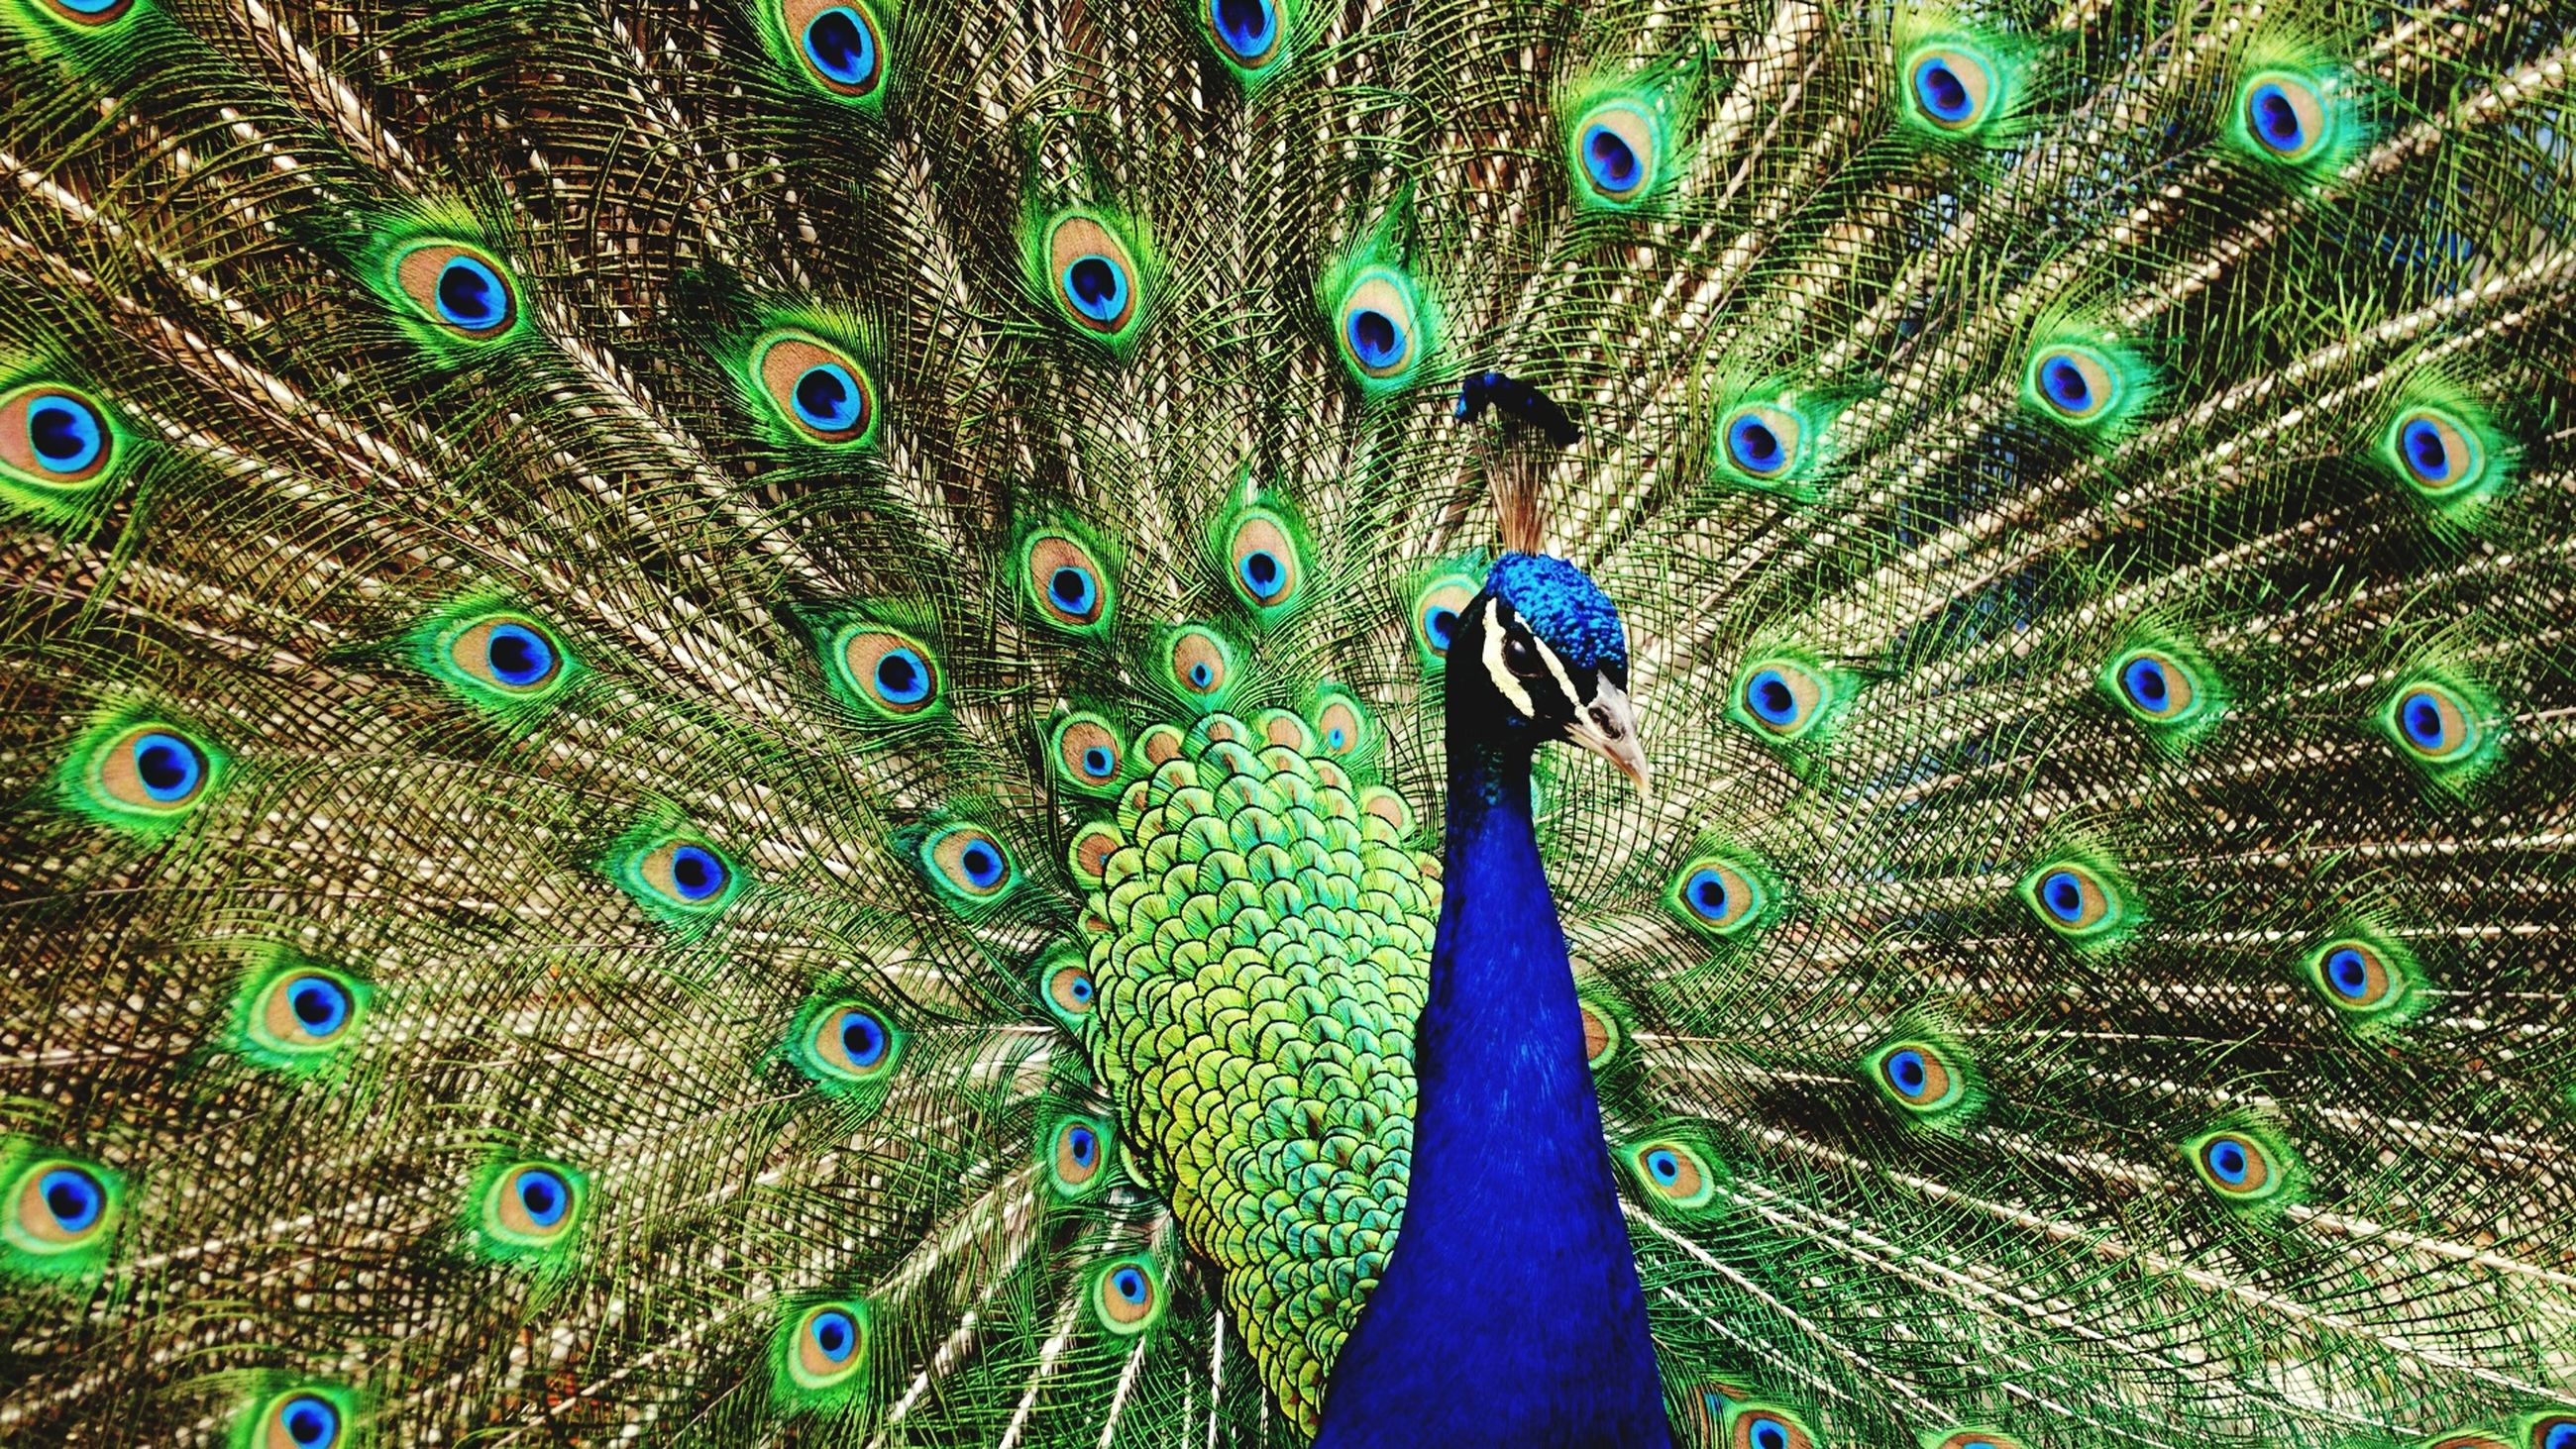 peacock, animal themes, wildlife, one animal, animals in the wild, bird, peacock feather, fanned out, blue, feather, male animal, close-up, multi colored, natural pattern, beauty in nature, beauty, animal head, full frame, majestic, nature